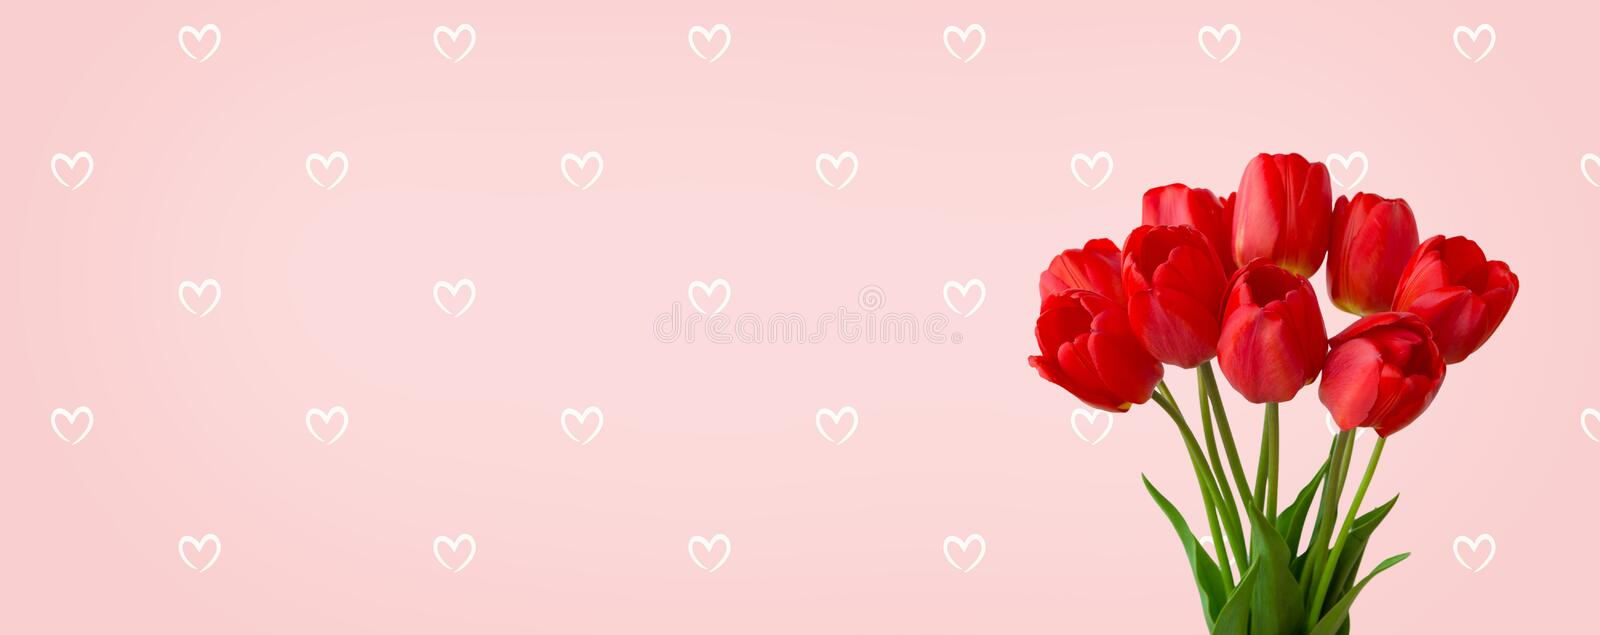 Panoramic light pink background with bouquet red tulip flowers royalty free stock images